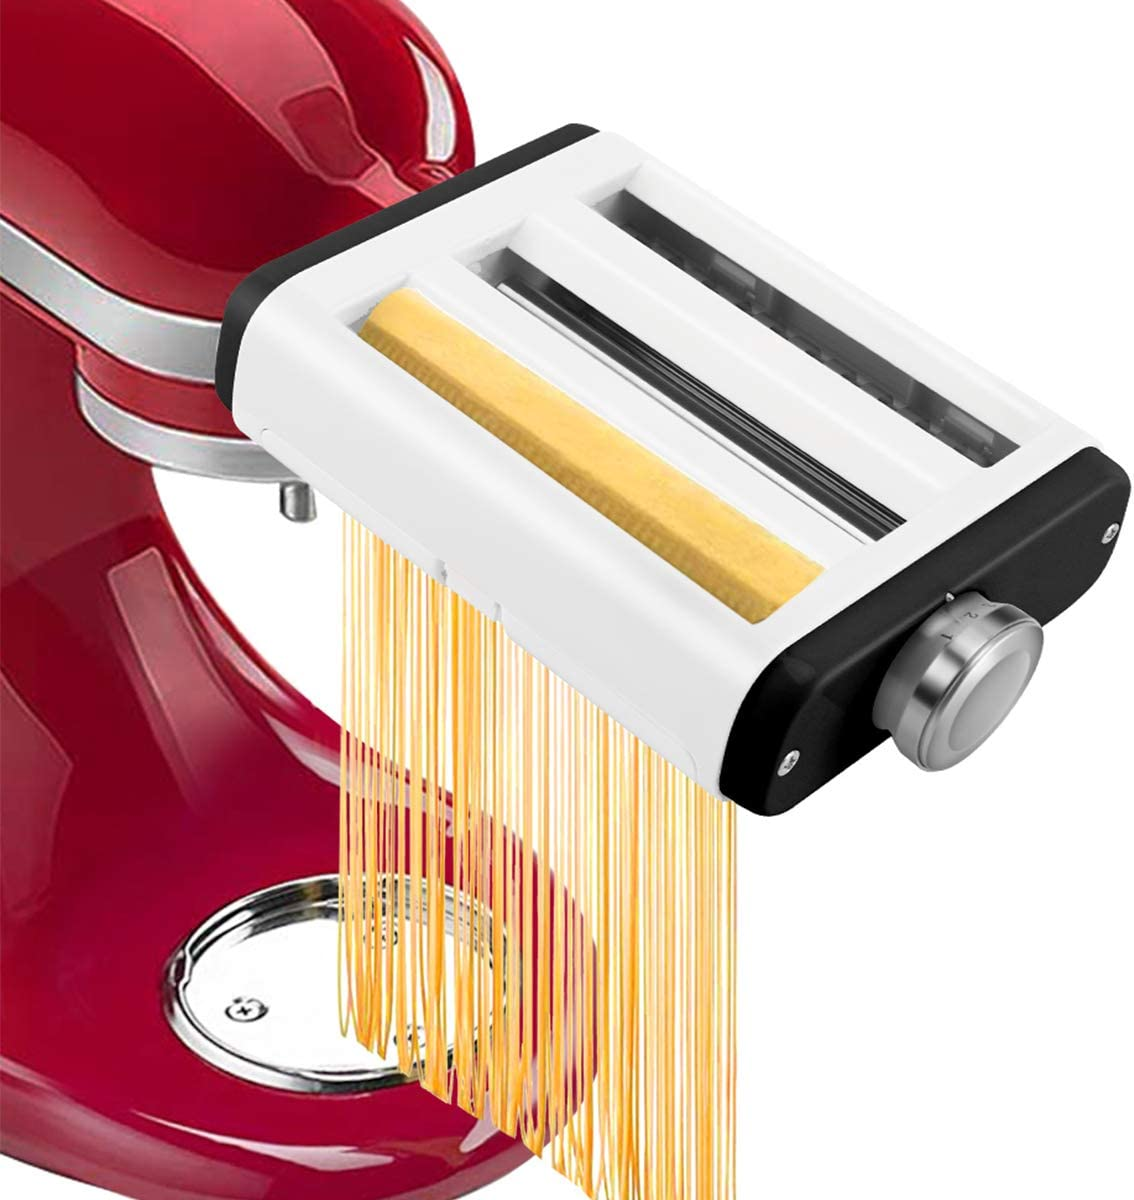 Pasta Maker Attachment for Kitchenaid Stand Superlatite In Profes 3 Beauty products 1 Mixer